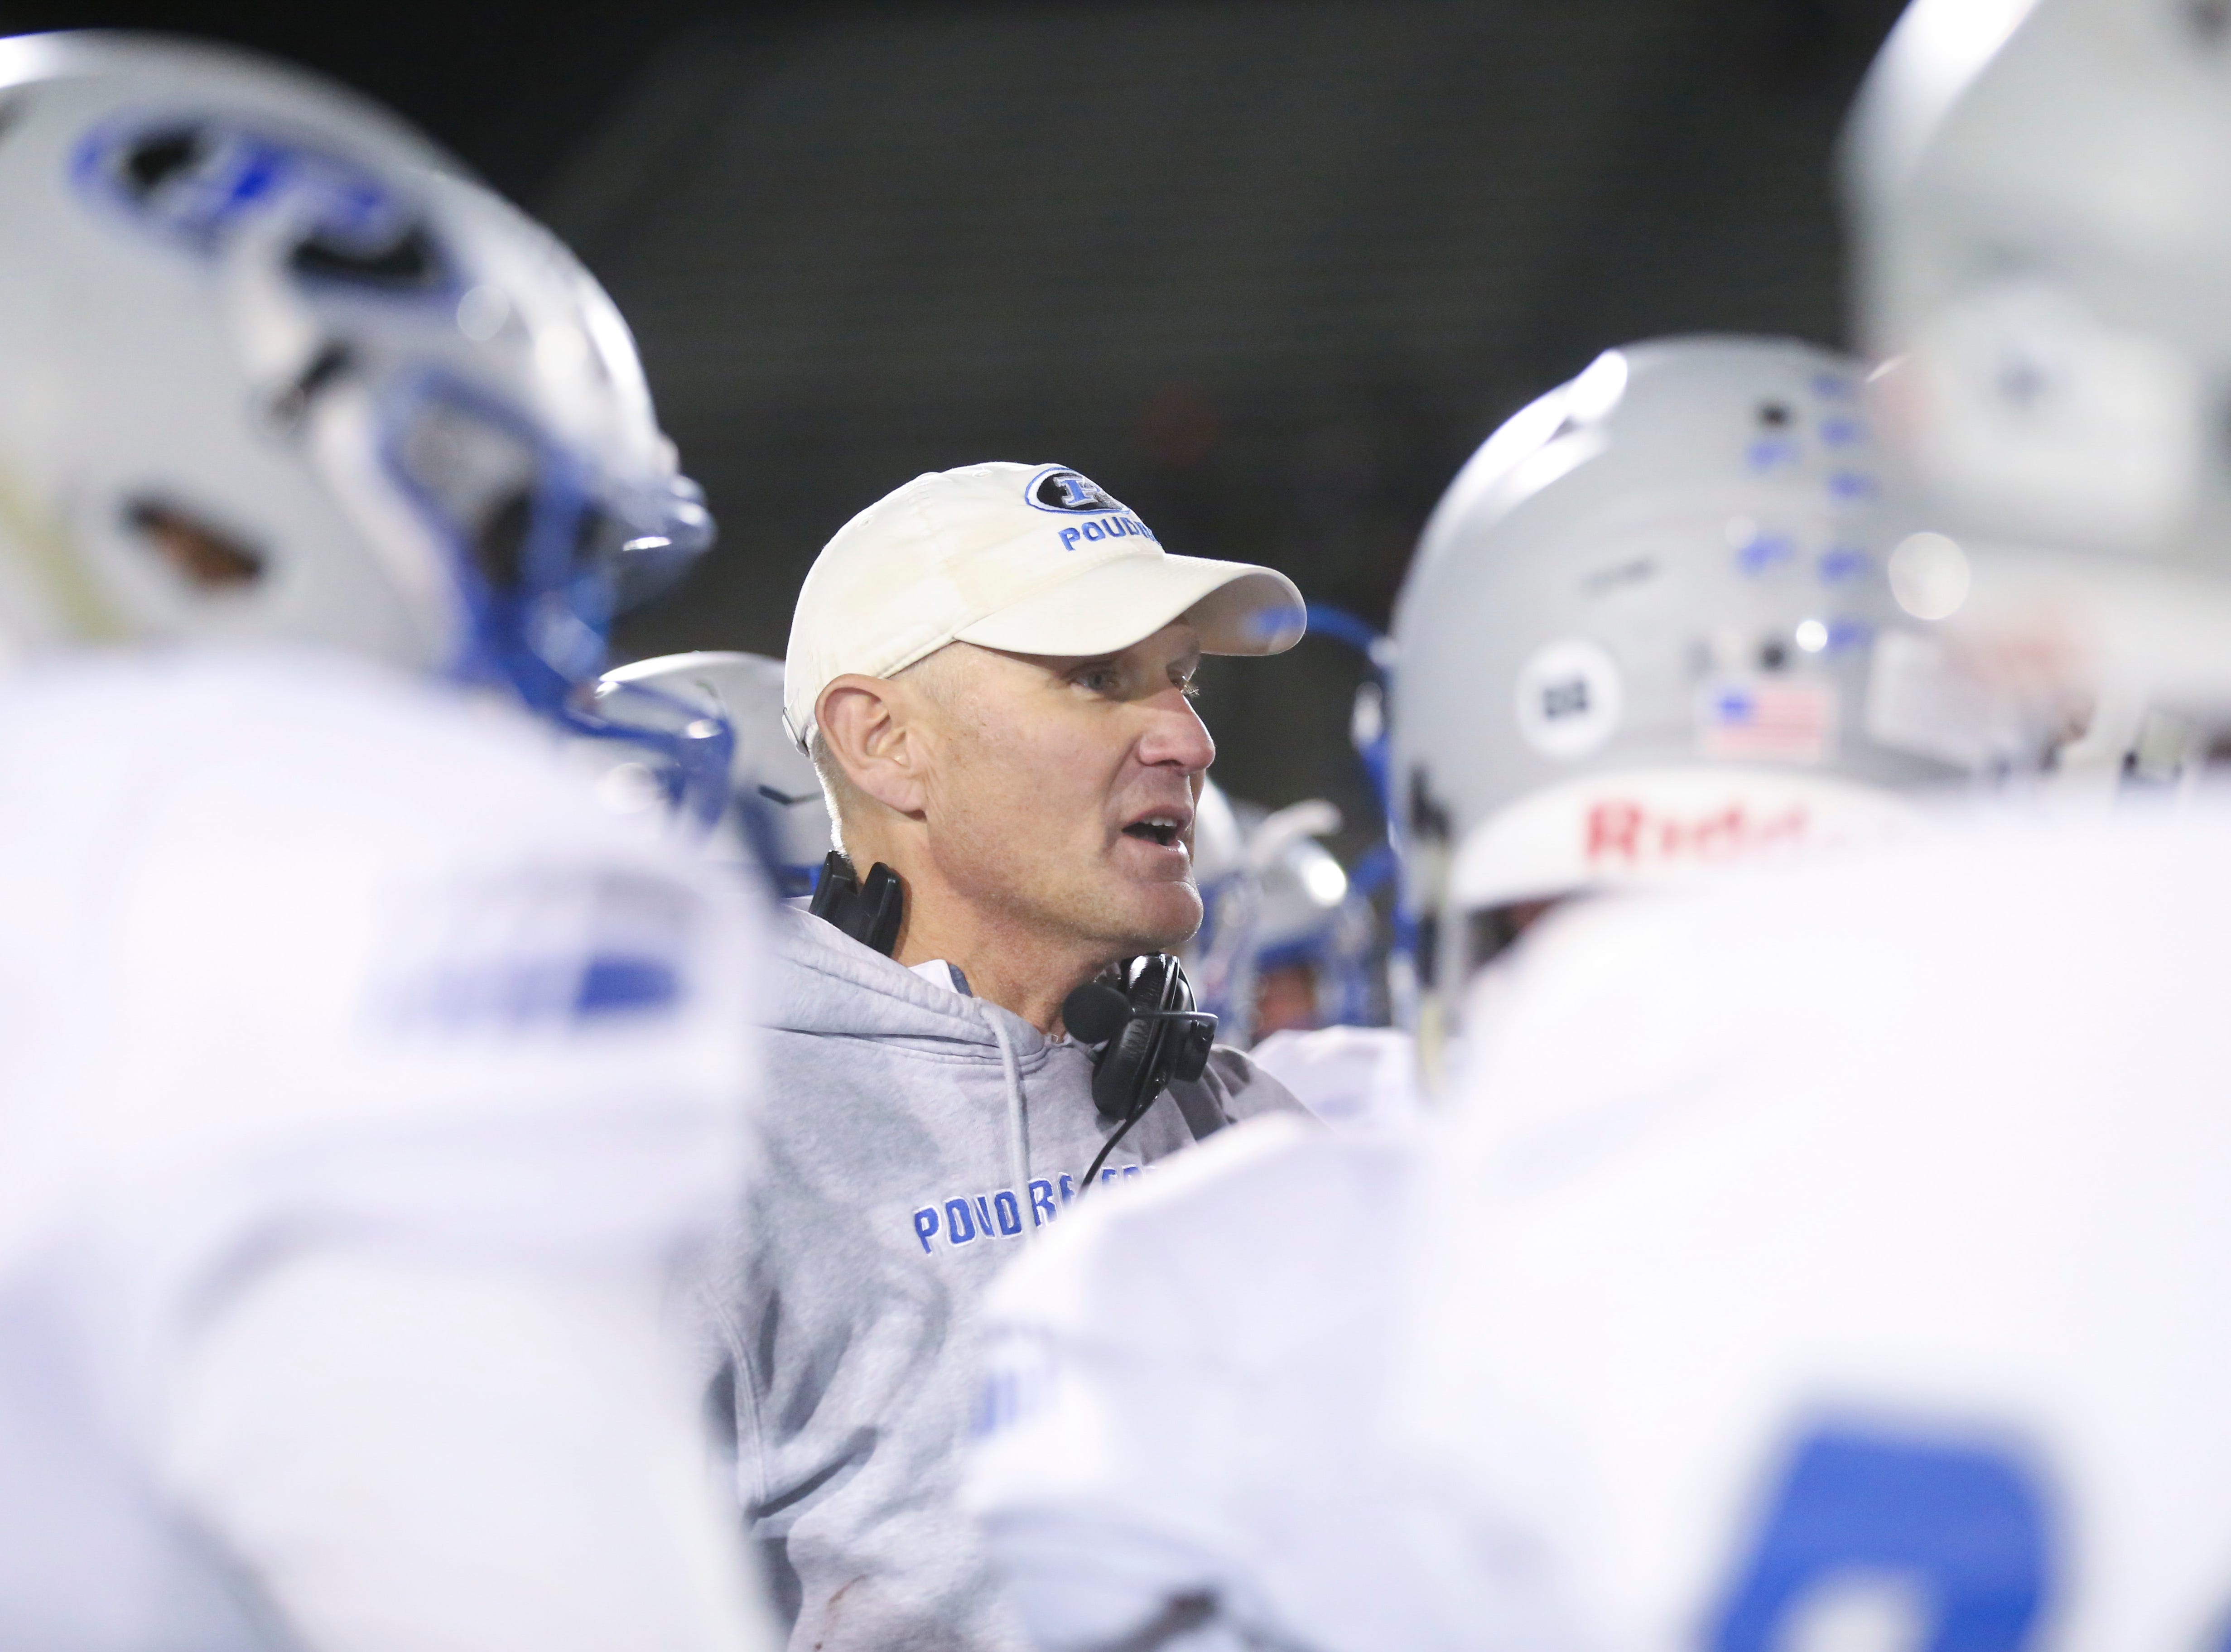 Poudre High School's head coach, Marty McVicker, speaks to his players after being defeated by Cherokee Trail High School in a double overtime state playoff game on Friday evening in Aurora.